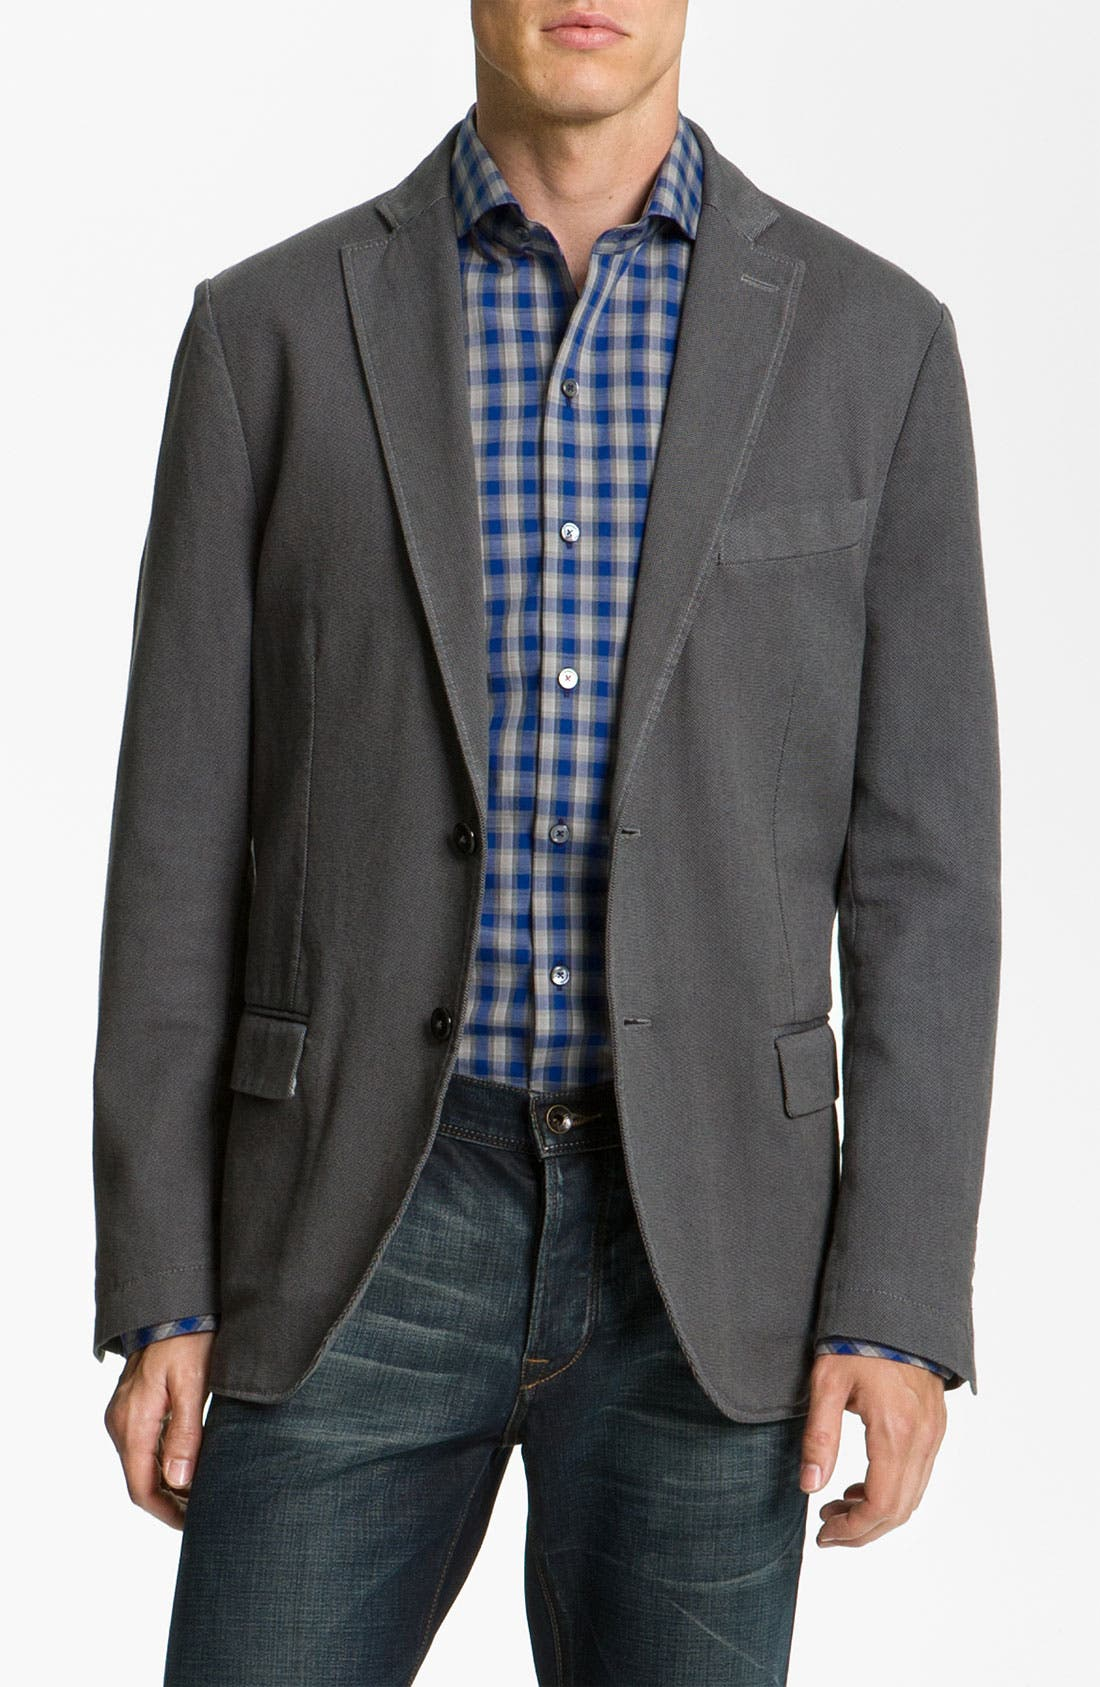 Main Image - Zachary Prell 'Waverly' Sportcoat